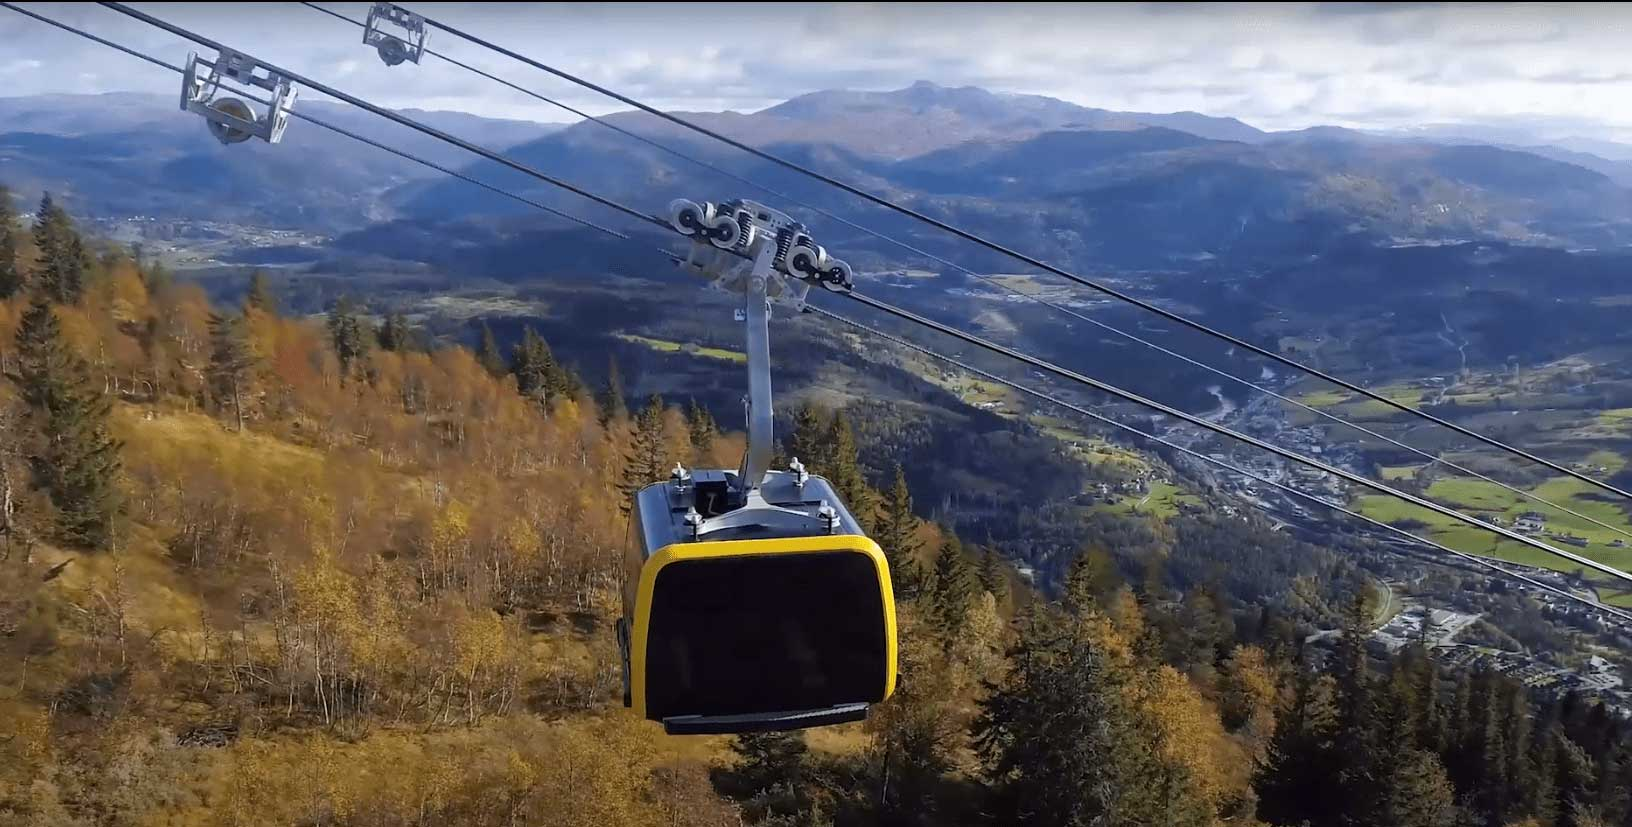 Gondola in Voss Norway going up a mountain